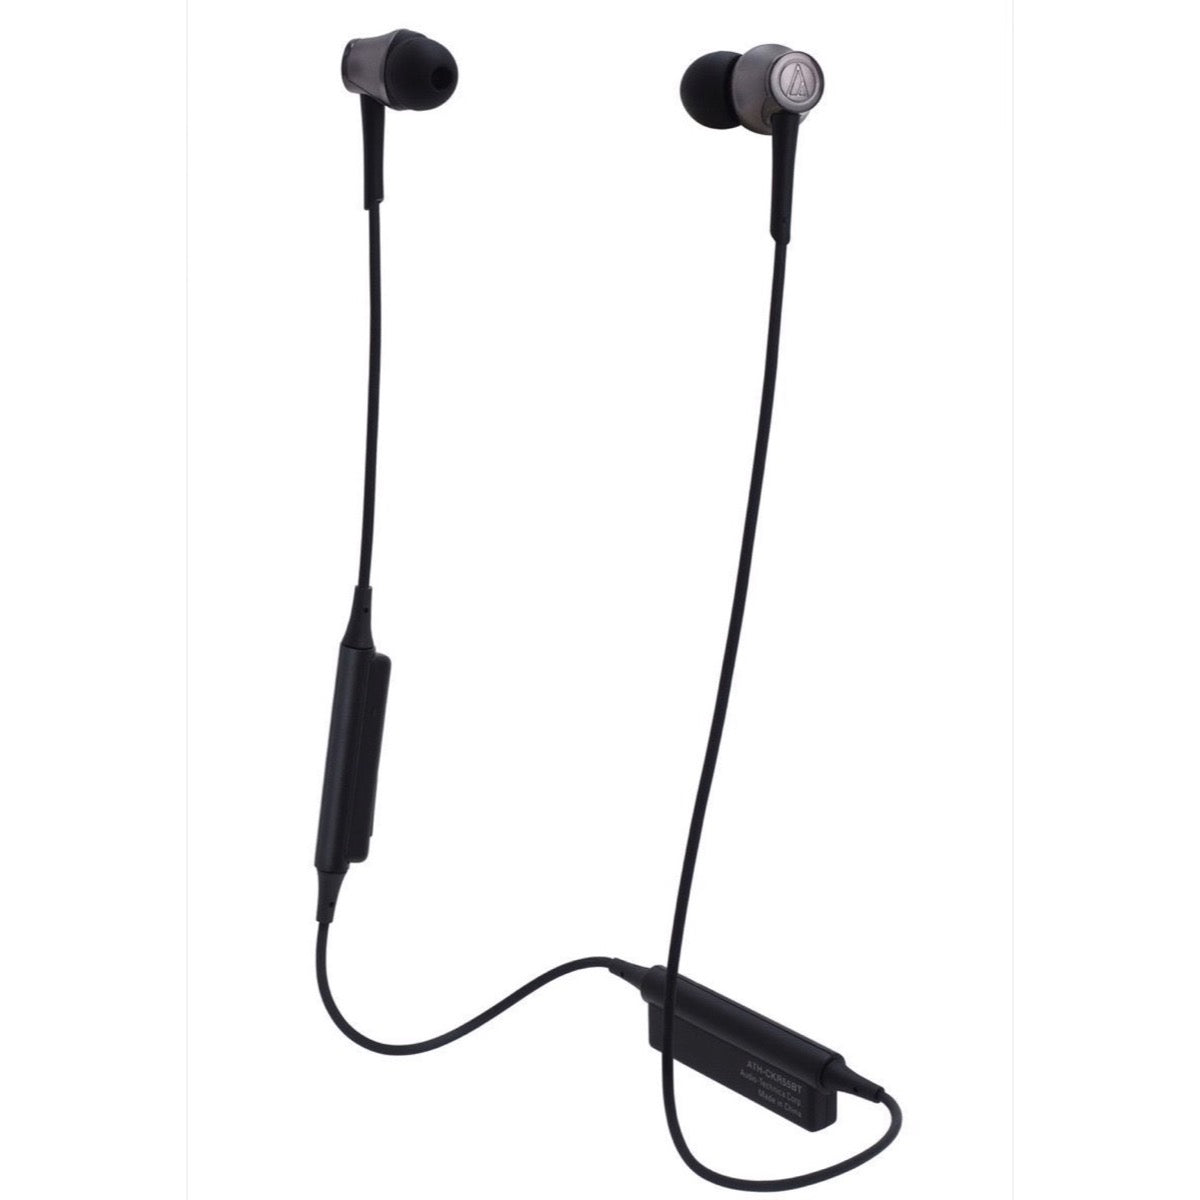 Audio-Technica ATH-CKR55BT Bluetooth In-Ear Headphones, Black